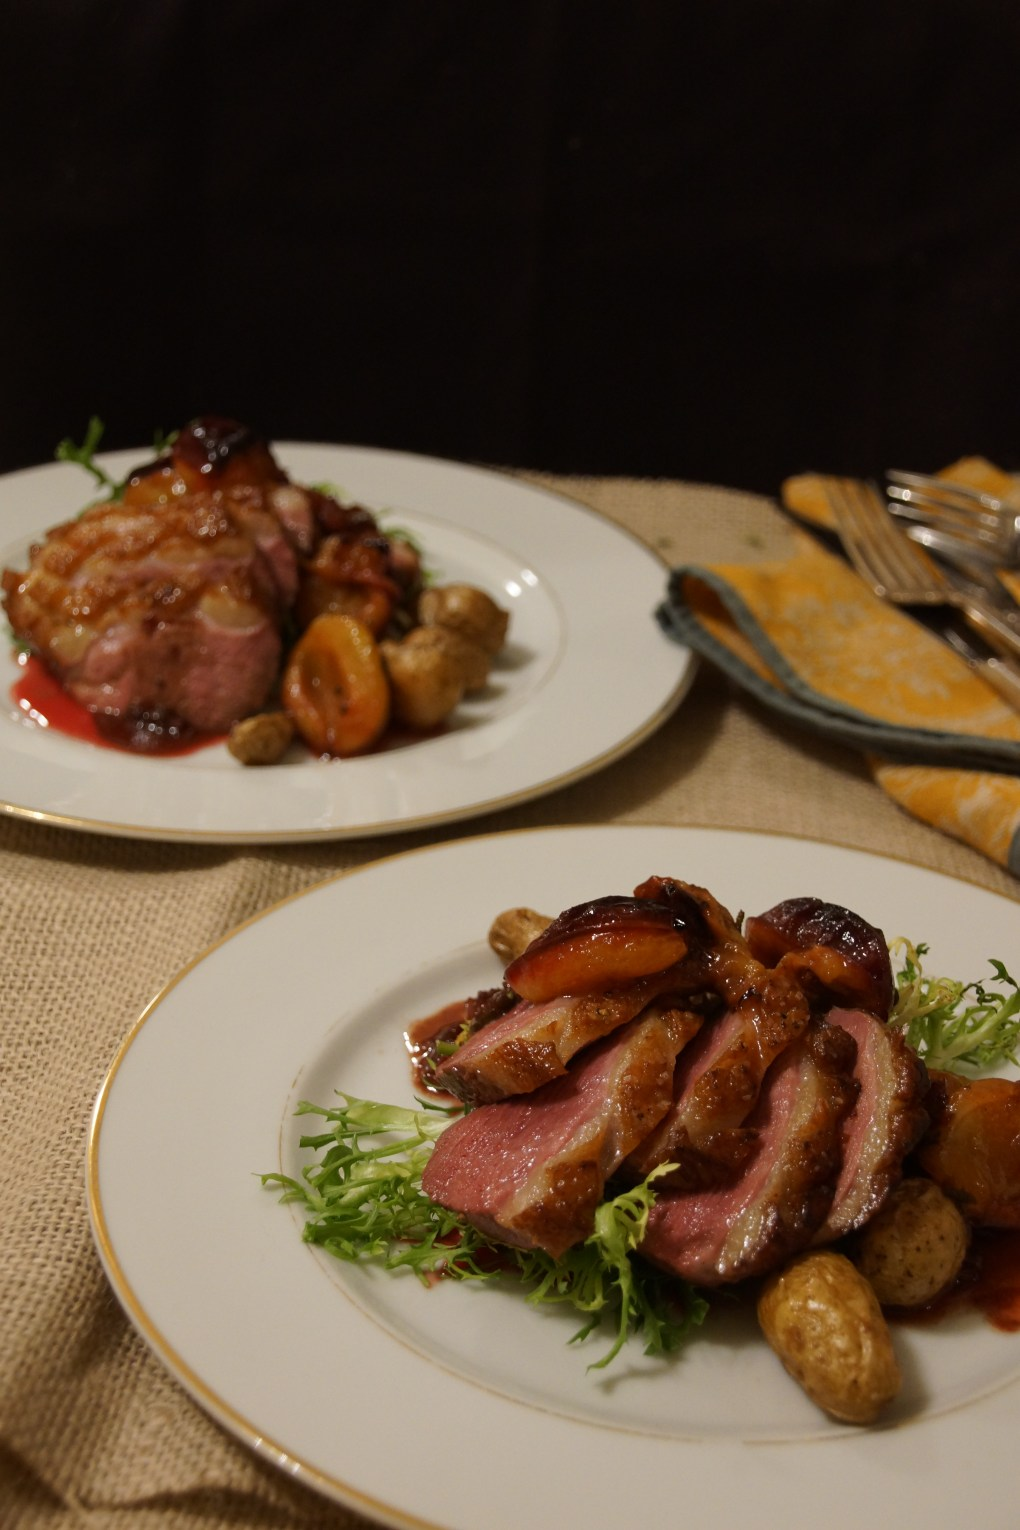 Skillet Roasted Duck Breasts with Italian Plums